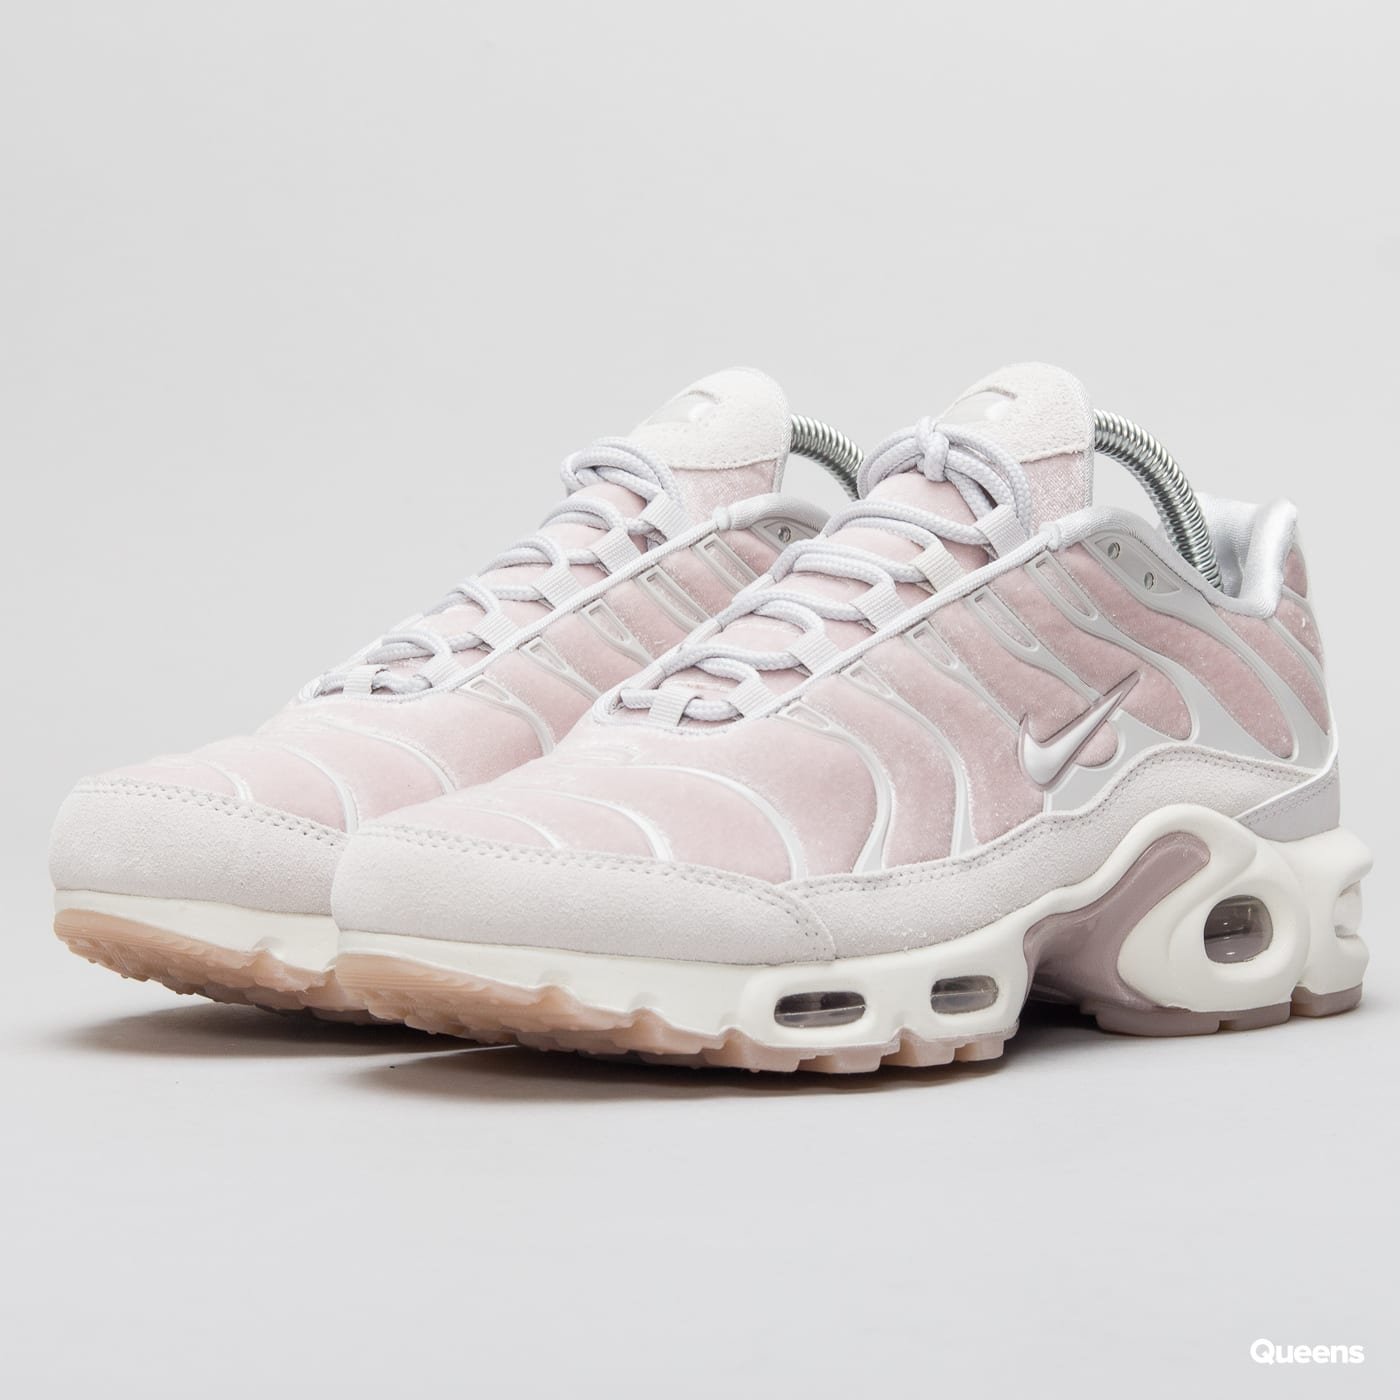 Nike WMNS Air Max Plus LX particle rose